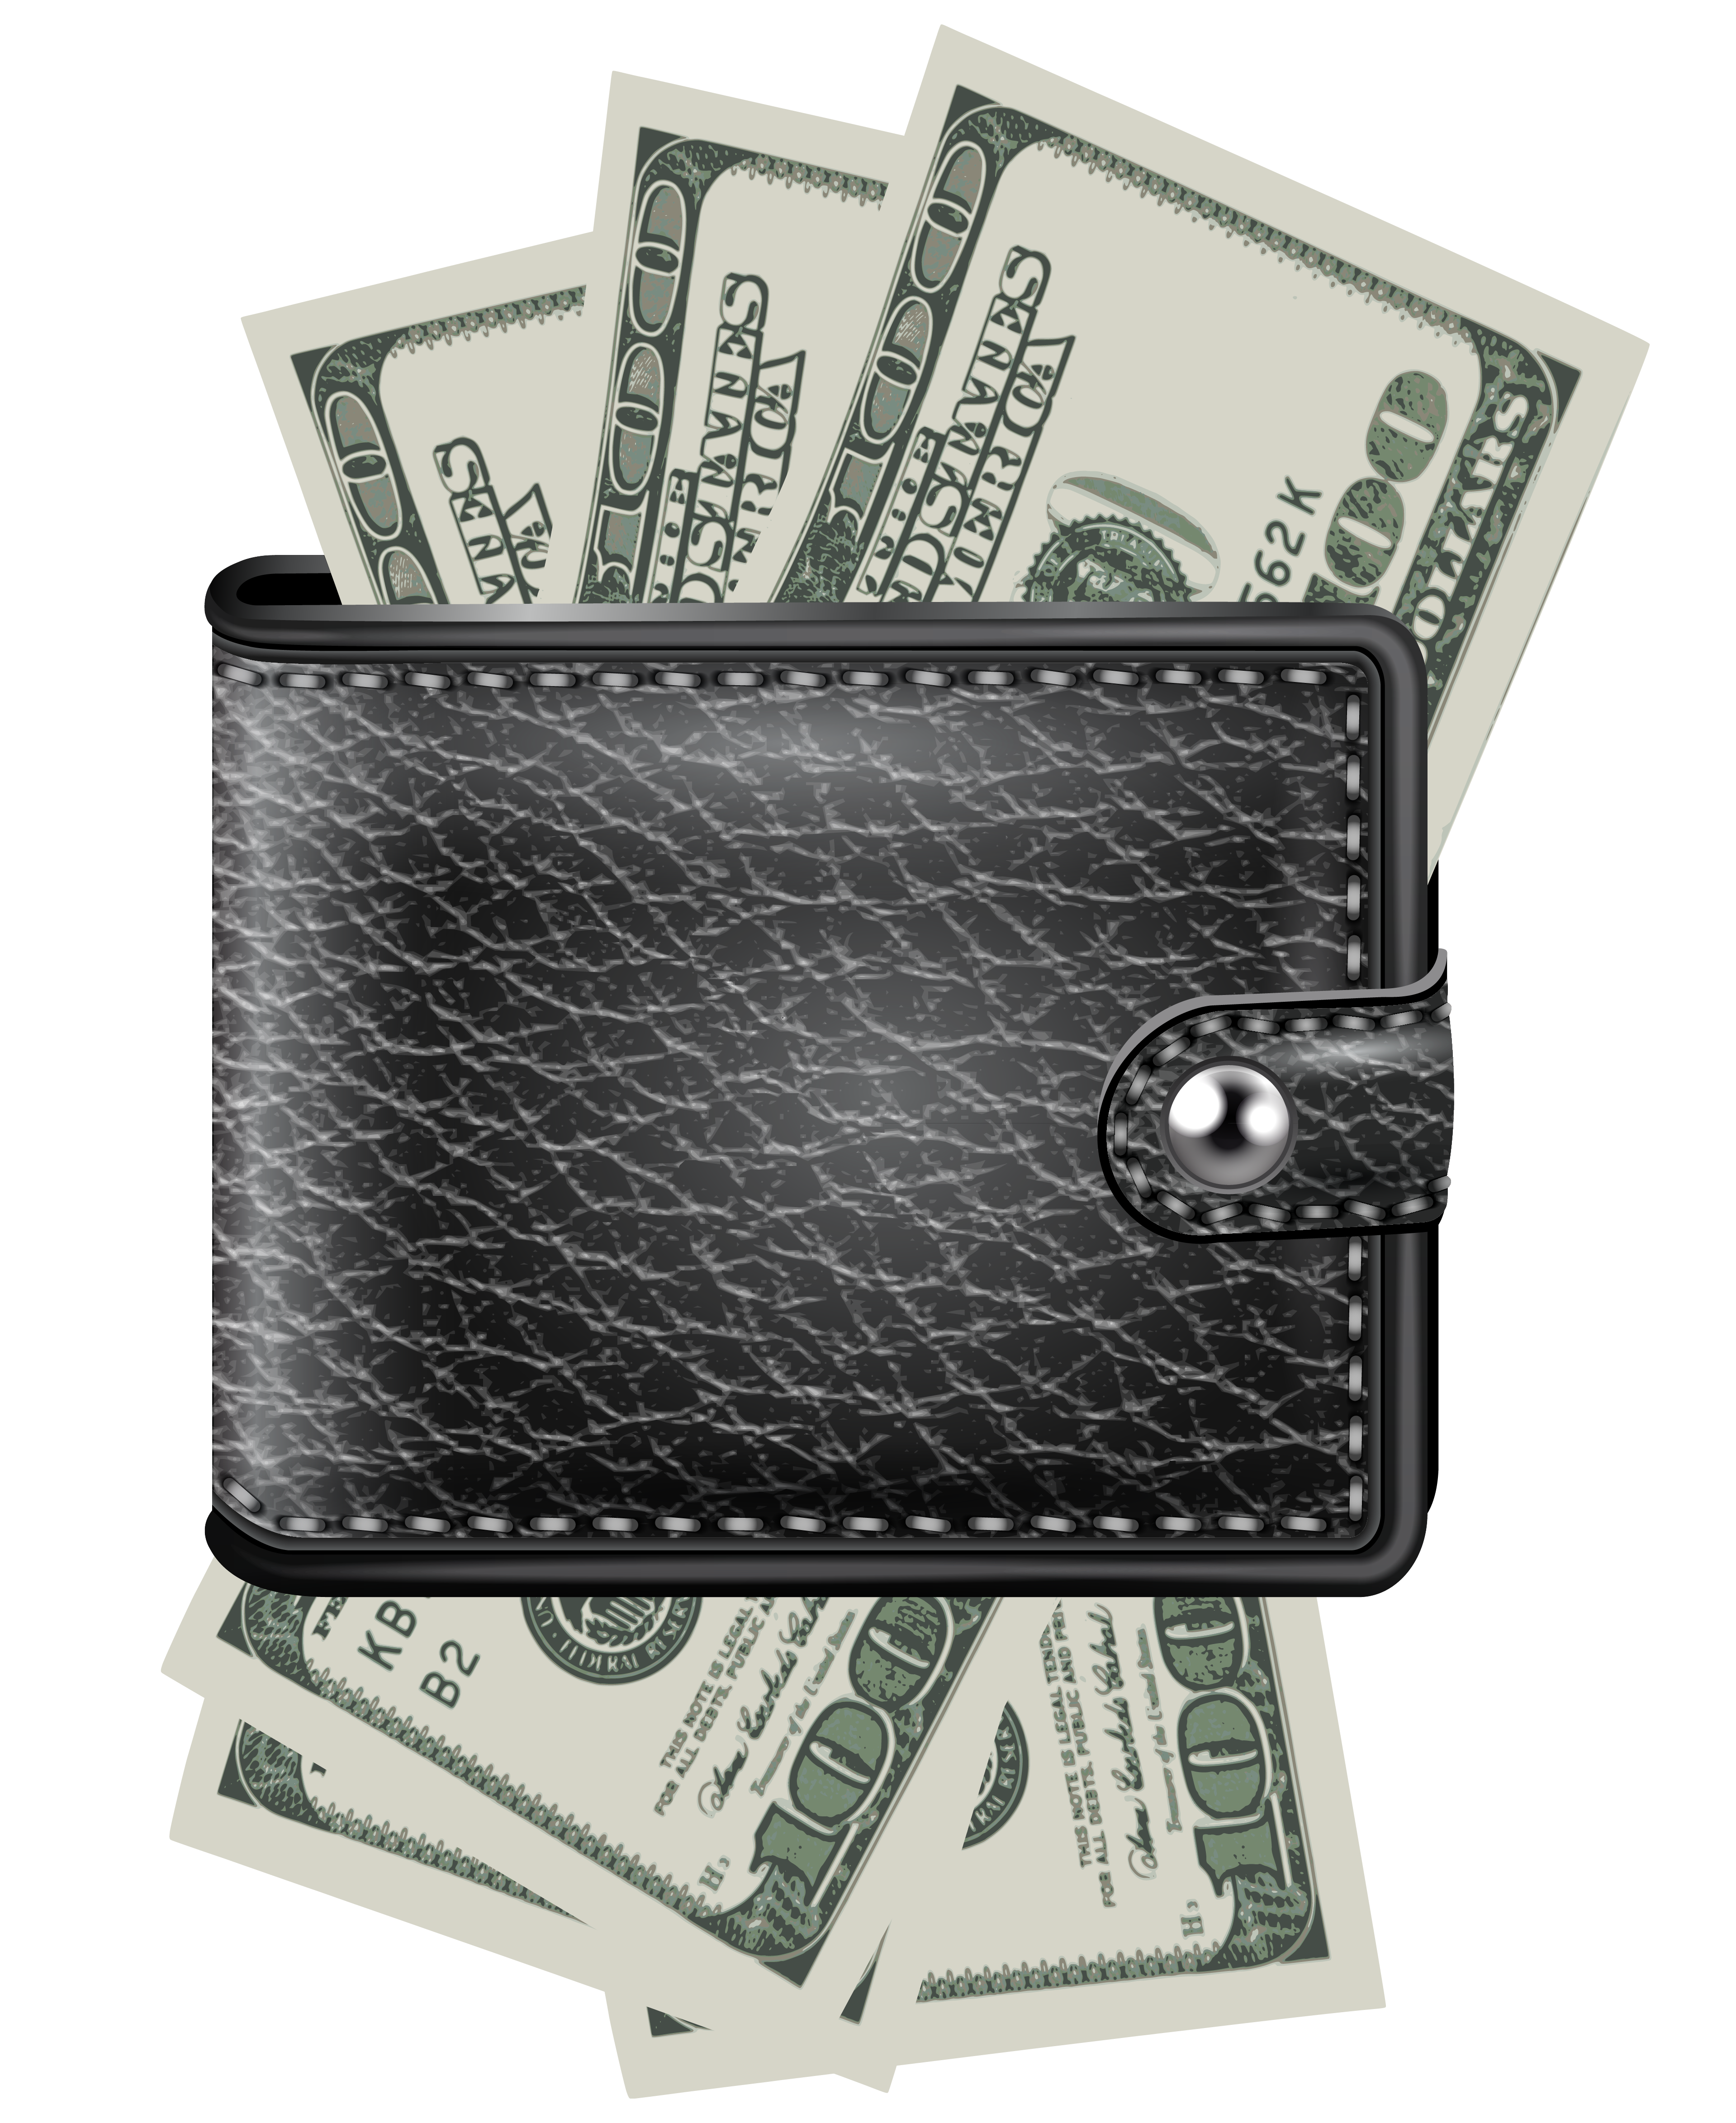 Wallet with bills png. Clipart money income